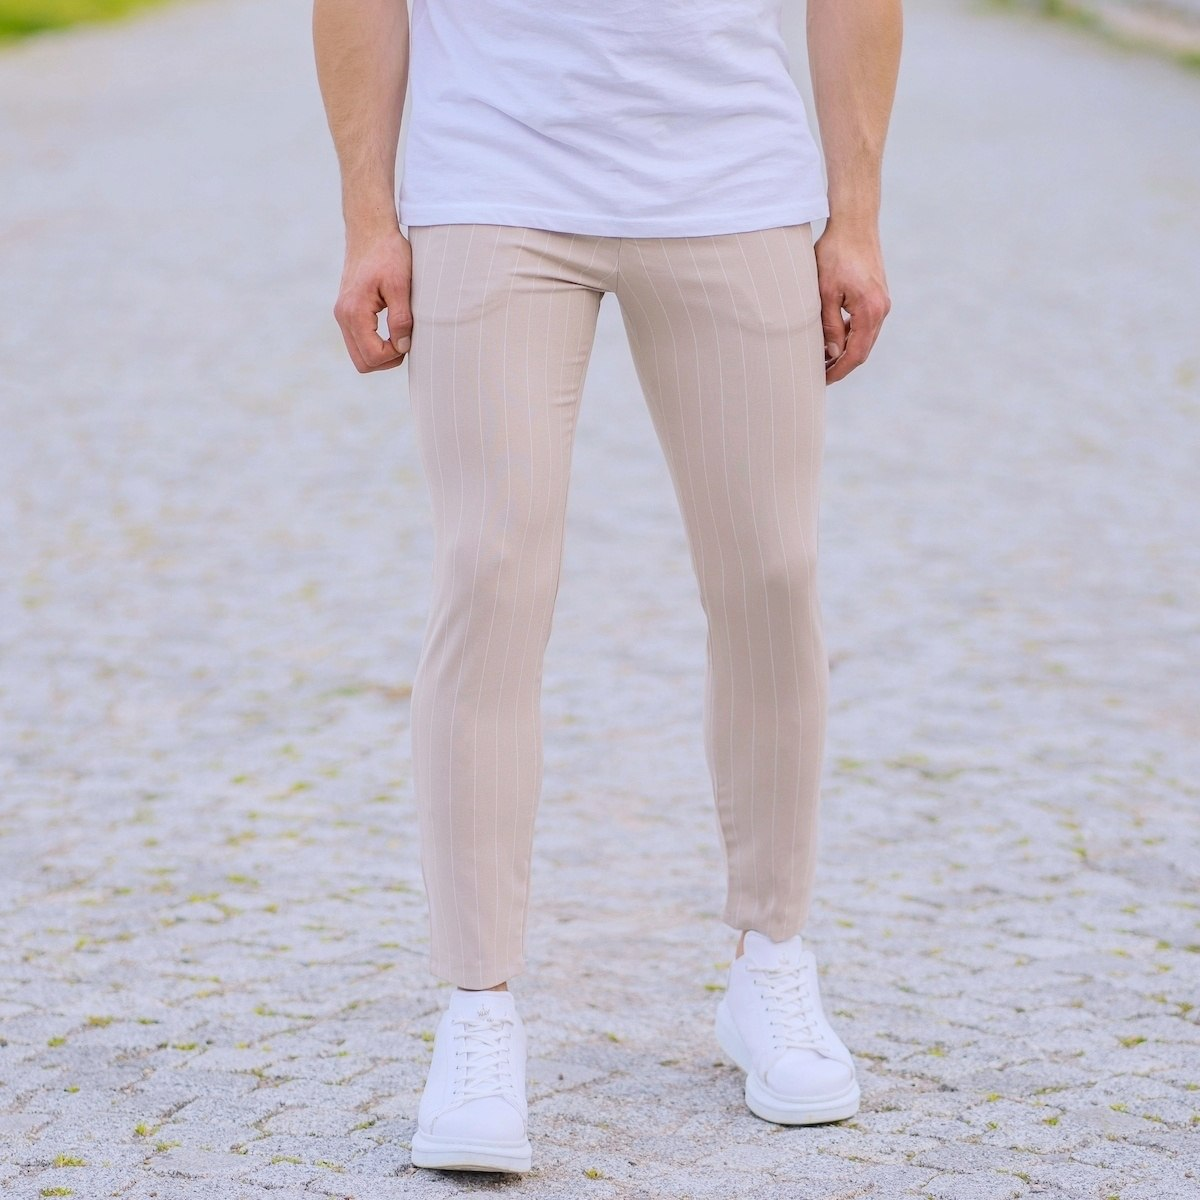 Stone Cream Trousers With White Stripes and Chain